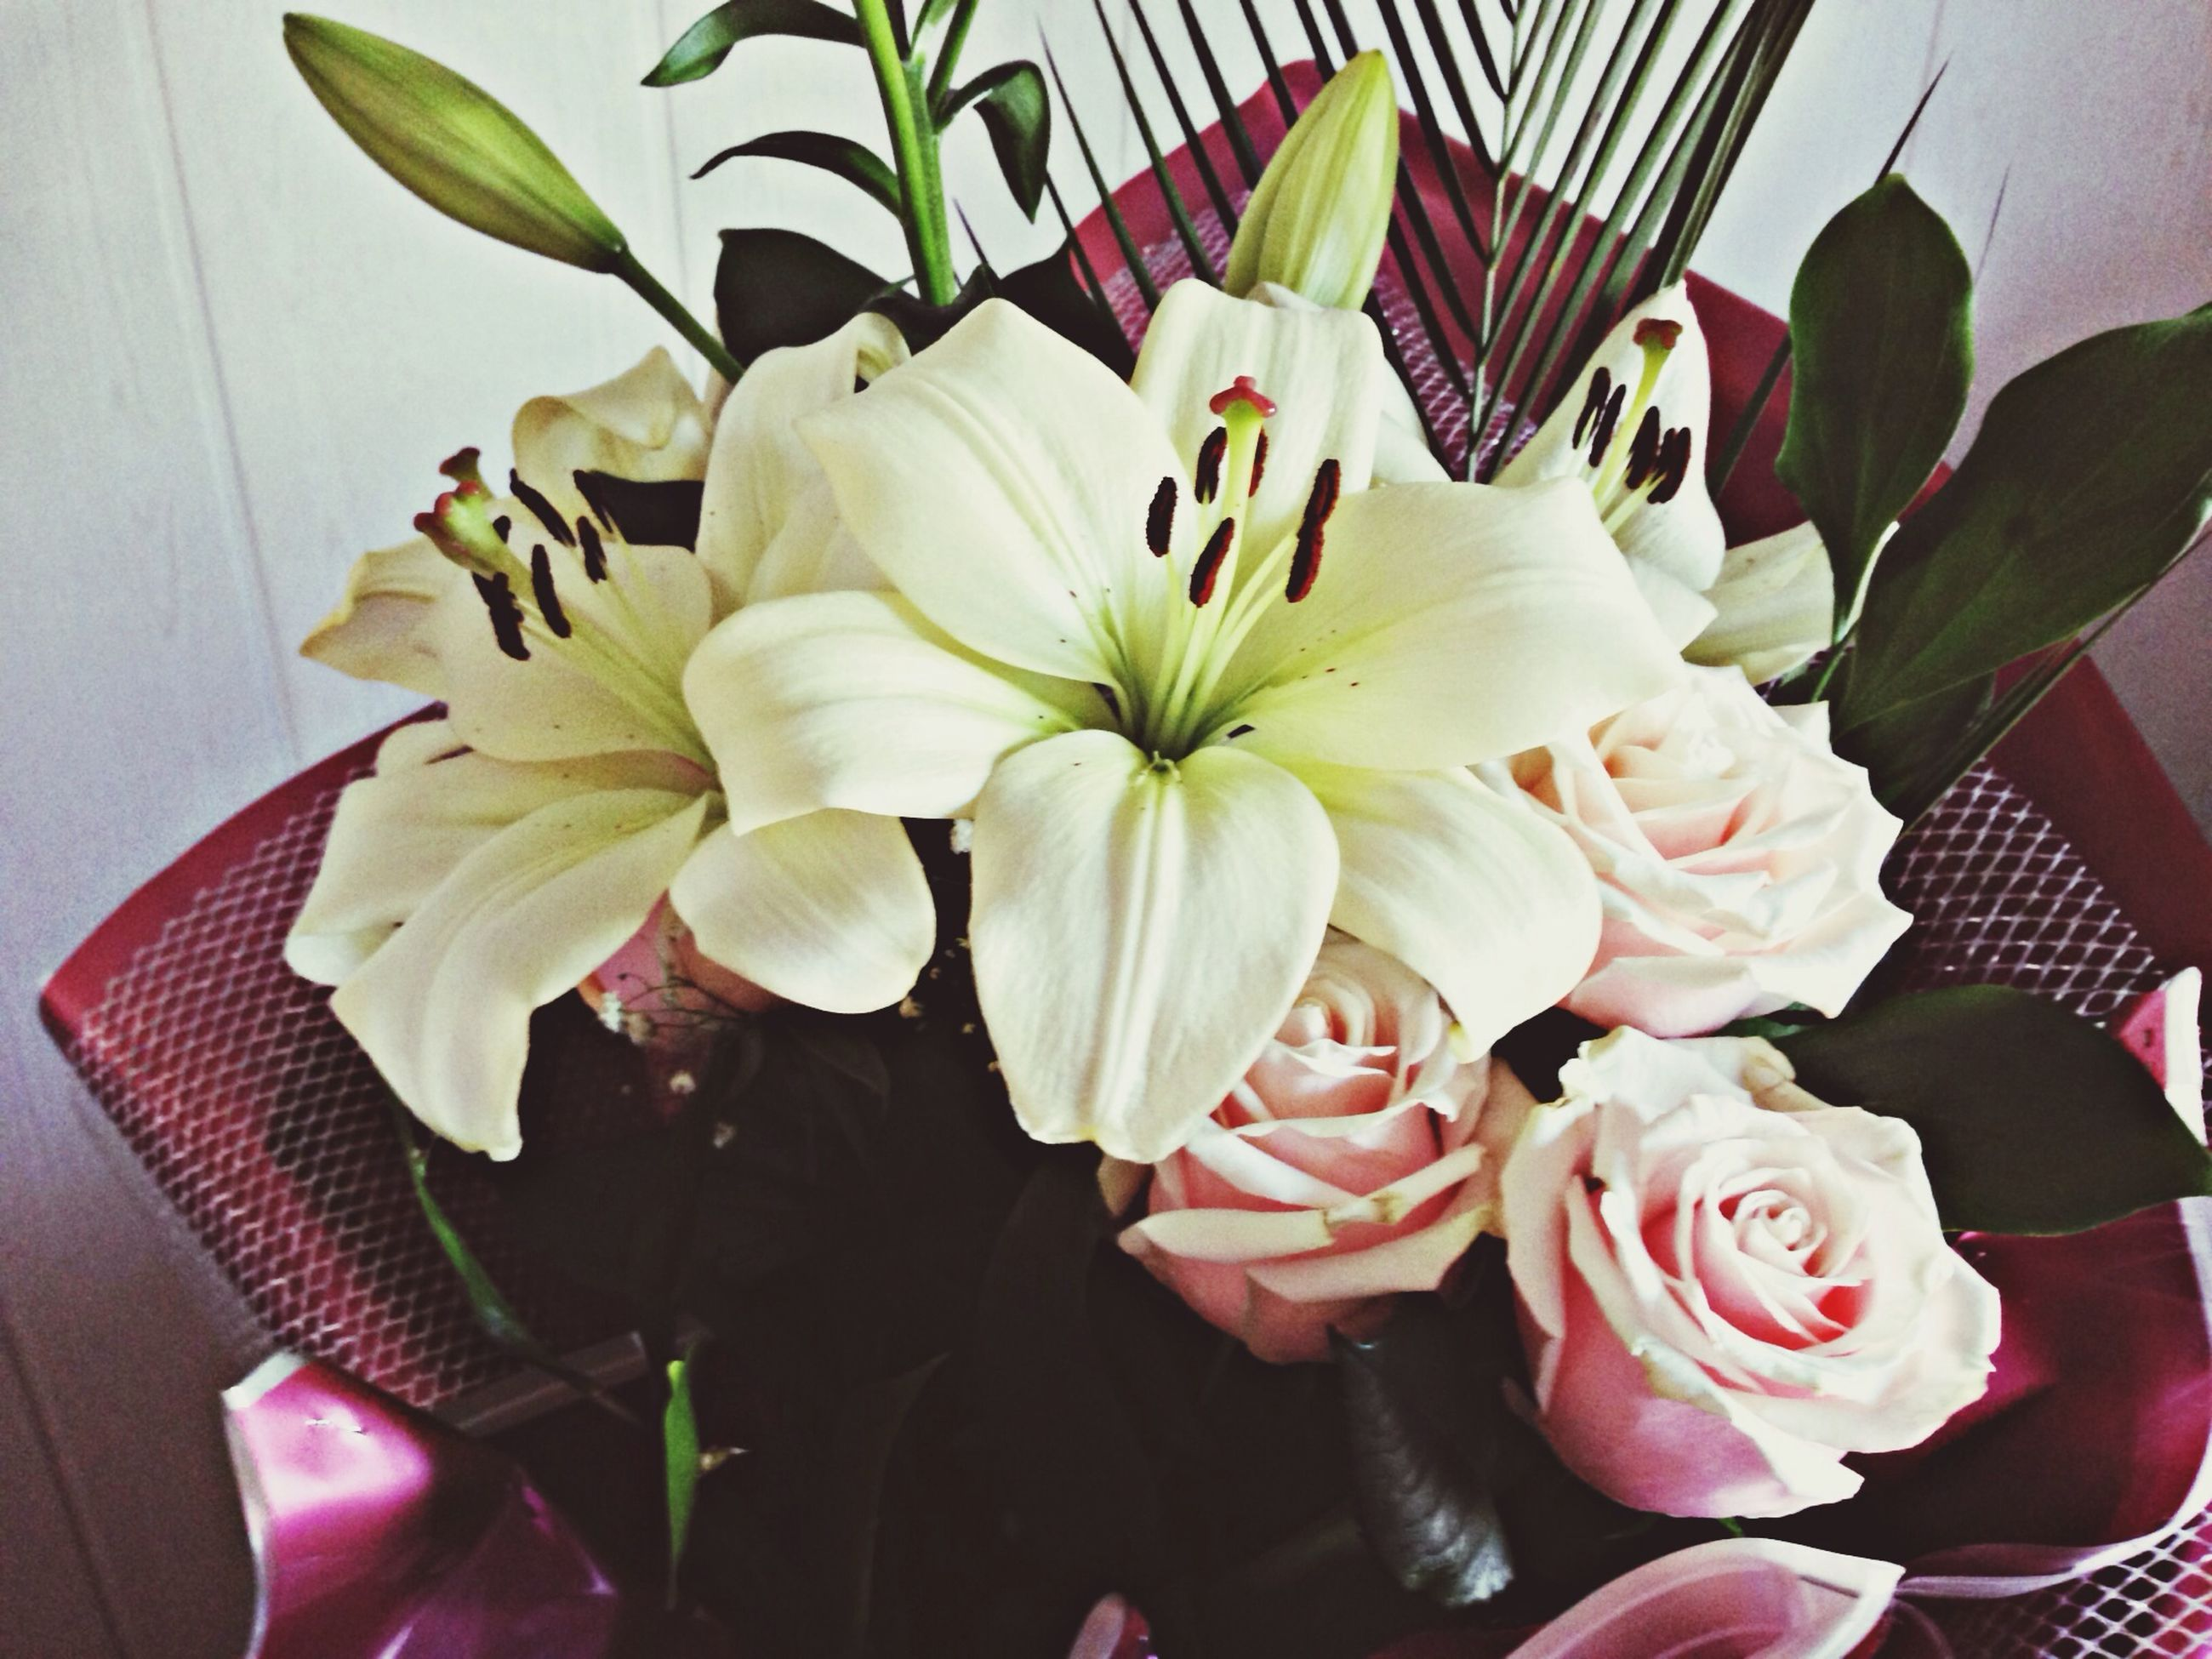 flower, petal, freshness, fragility, flower head, growth, beauty in nature, indoors, white color, leaf, close-up, nature, blooming, plant, high angle view, pink color, blossom, no people, in bloom, vase